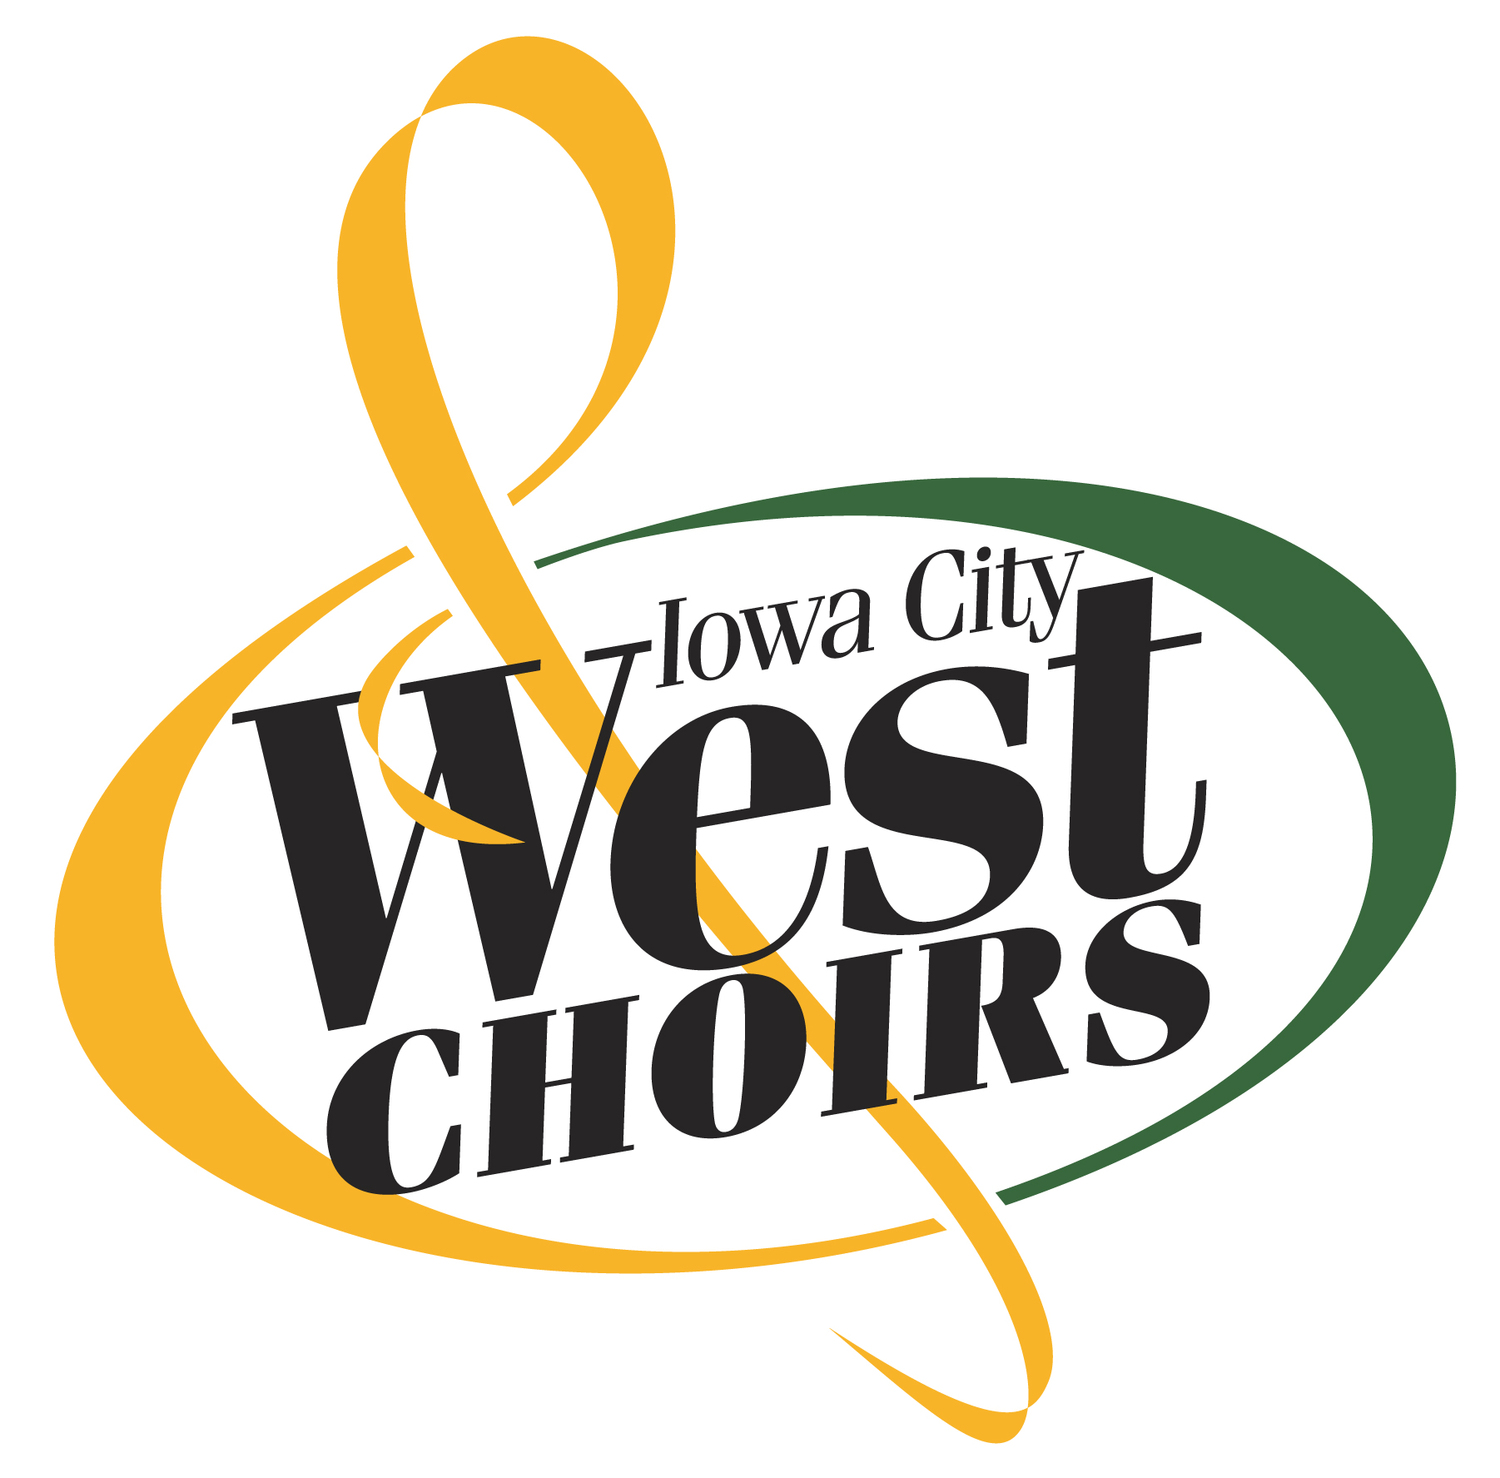 Iowa City West High Choirs